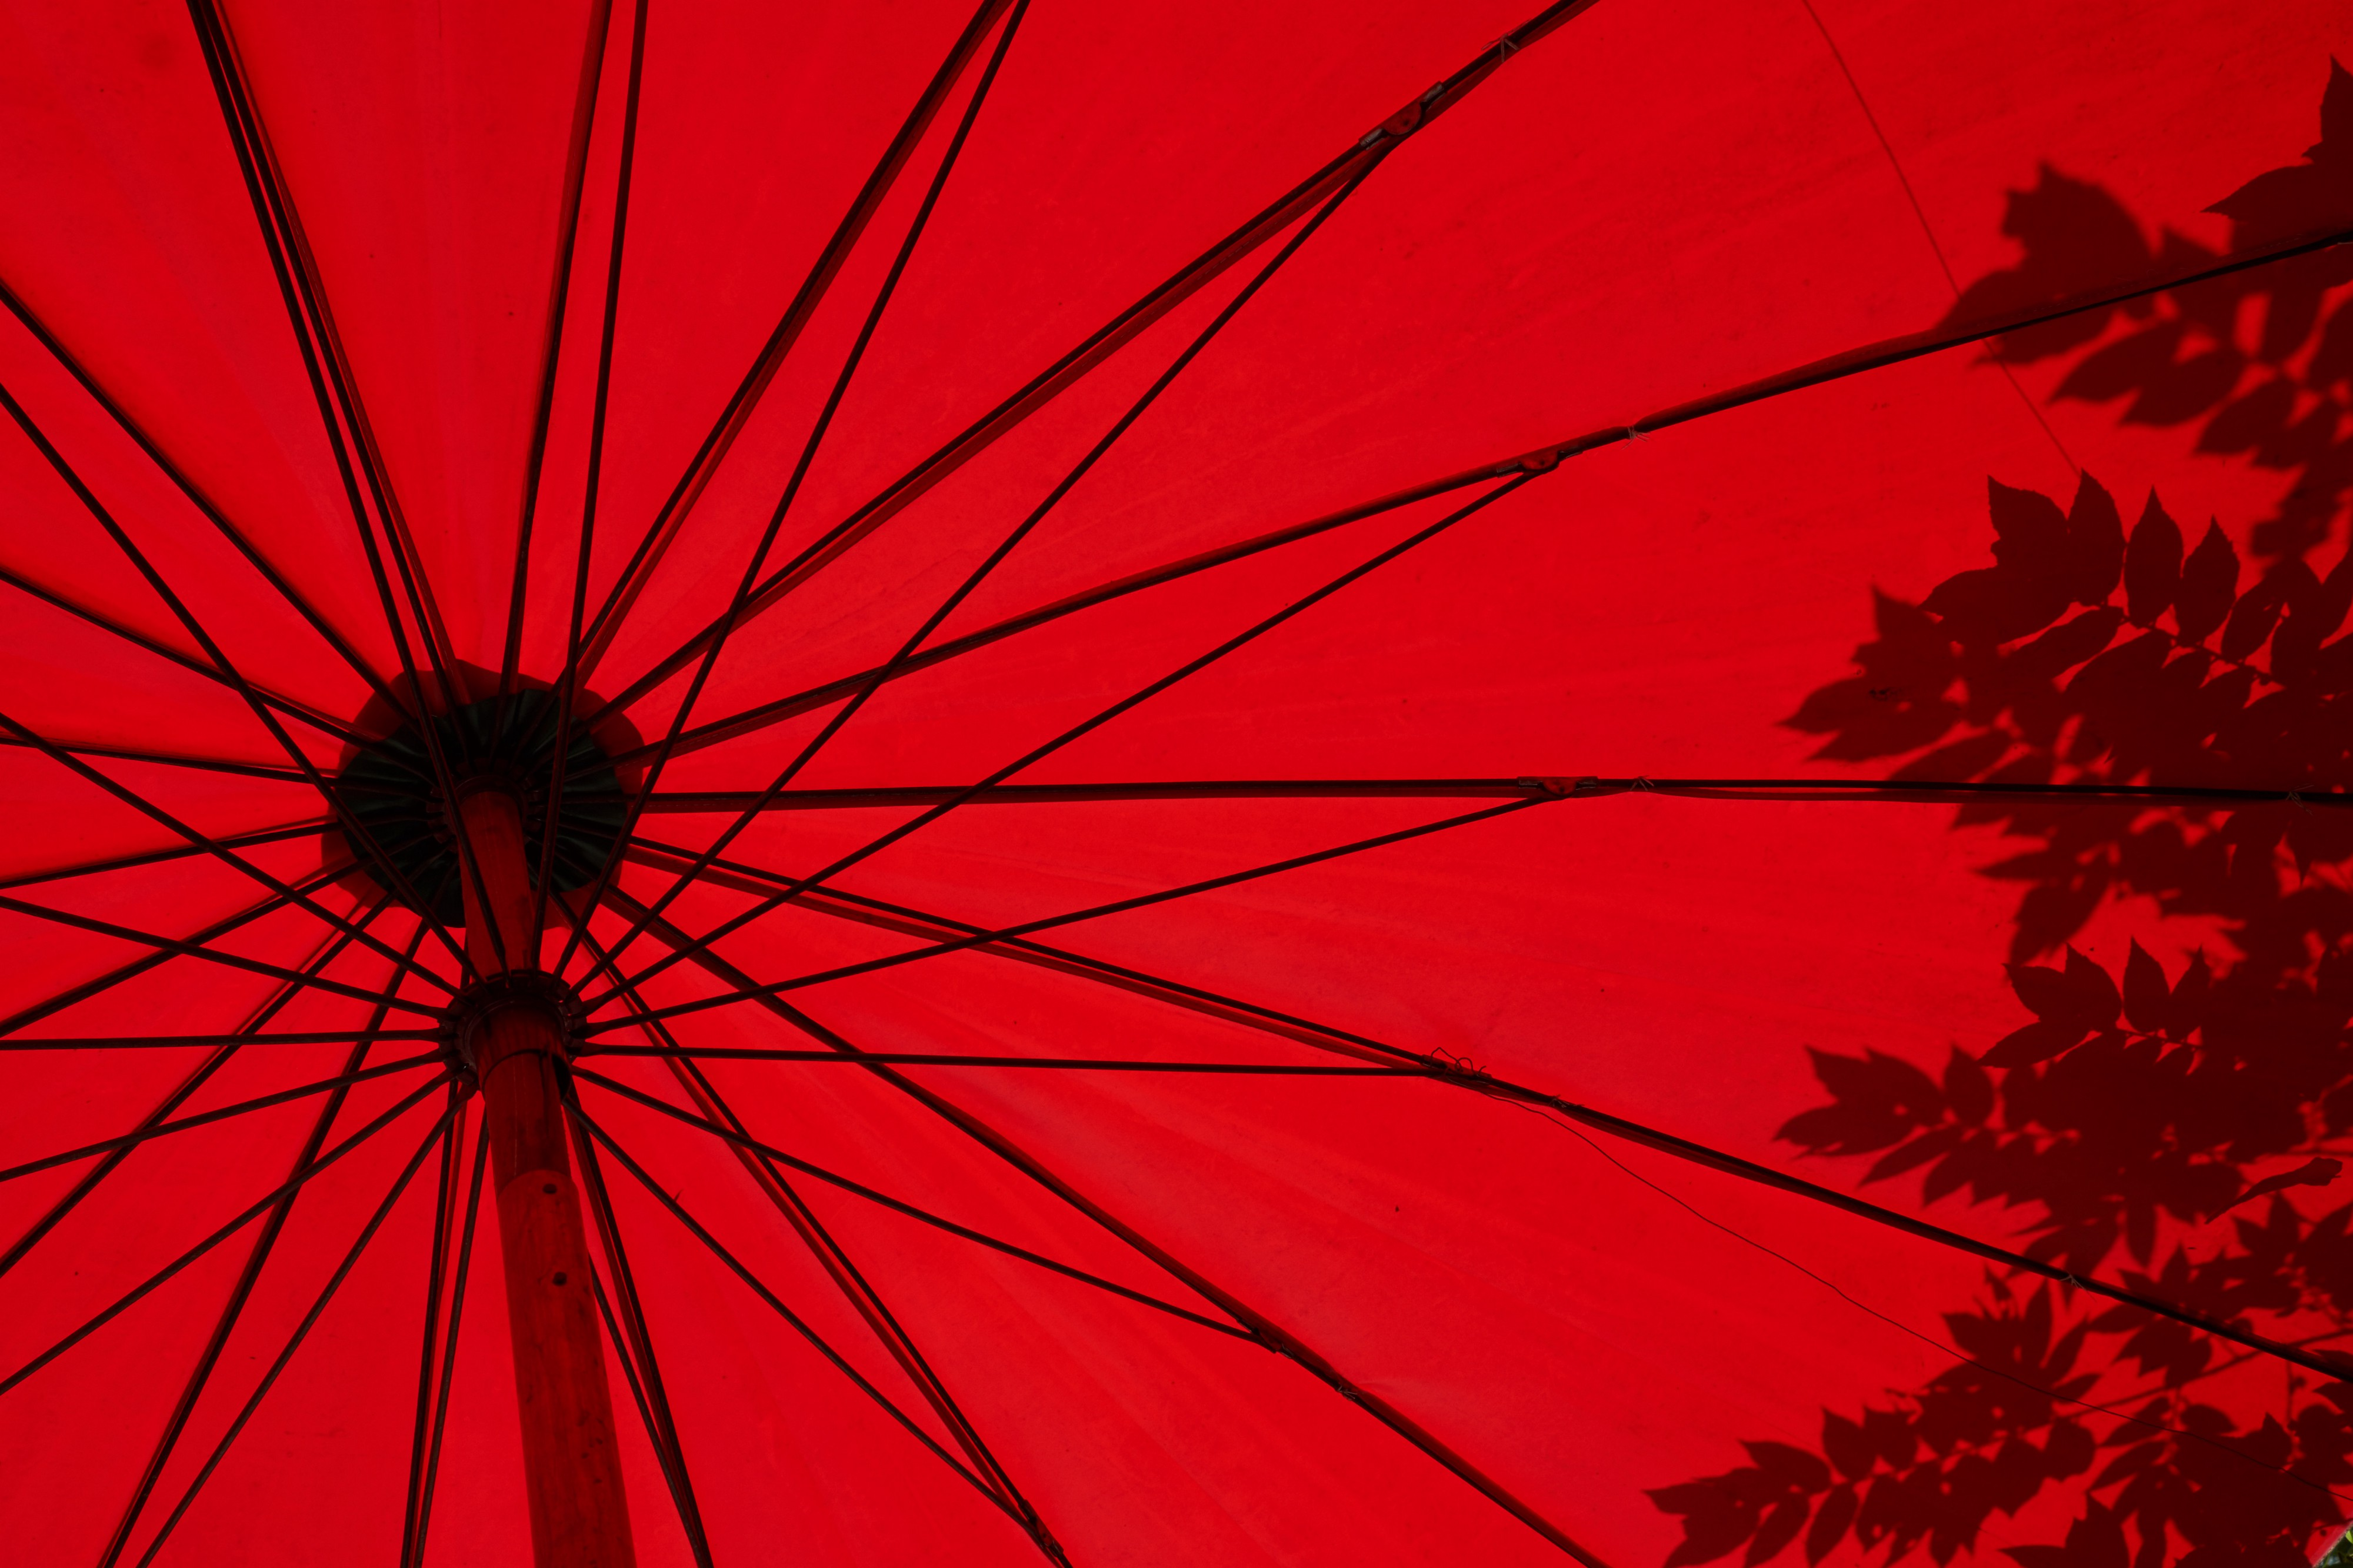 Photo of the underside of a red umbrella with shadows of leaves on the right side. Photo by Loïc Fürhoff.